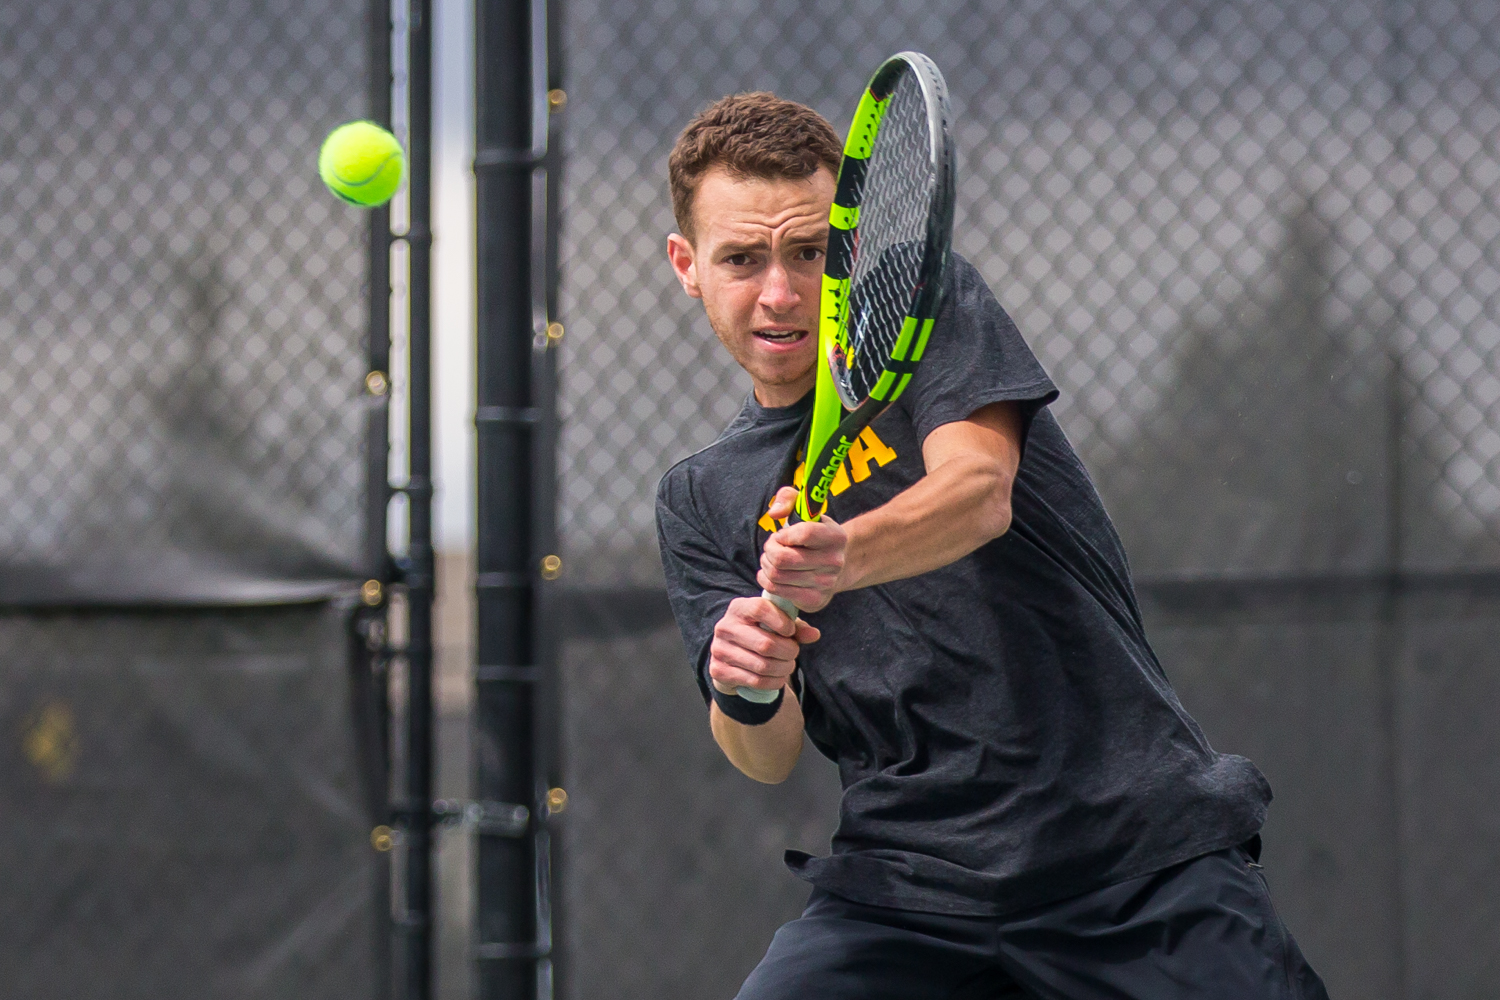 Iowa%27s+Kareem+Allaf+hits+a+backhand+during+a+men%27s+tennis+match+between+Iowa+and+Ohio+State+at+the+HTRC+on+Sunday%2C+April+7%2C+2019.+The+Buckeyes+defeated+the+Hawkeyes%2C+4-1.